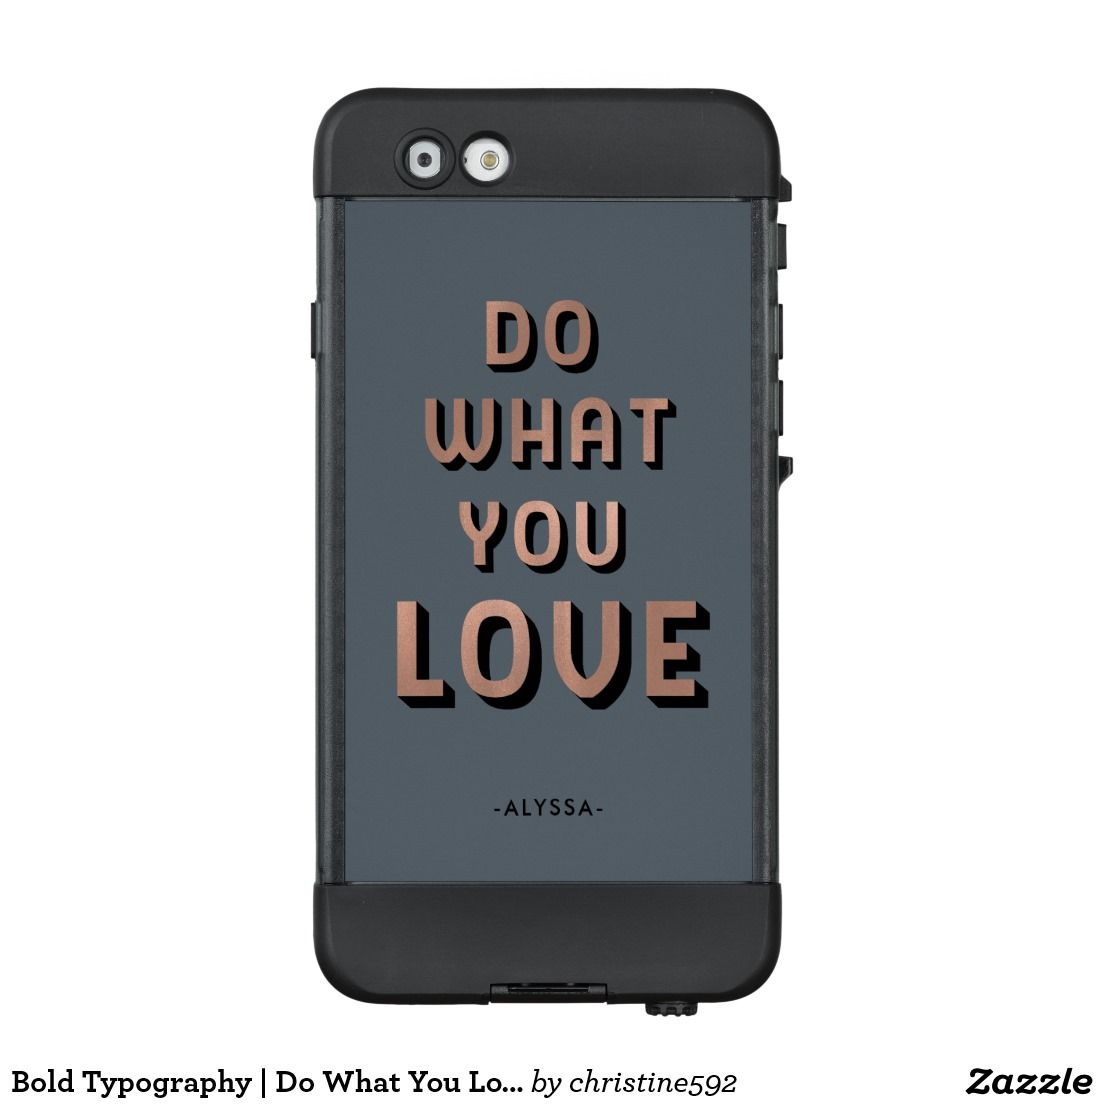 Bold Typography | Do What You Love LifeProof® NÜÜD® iPhone 6 Case